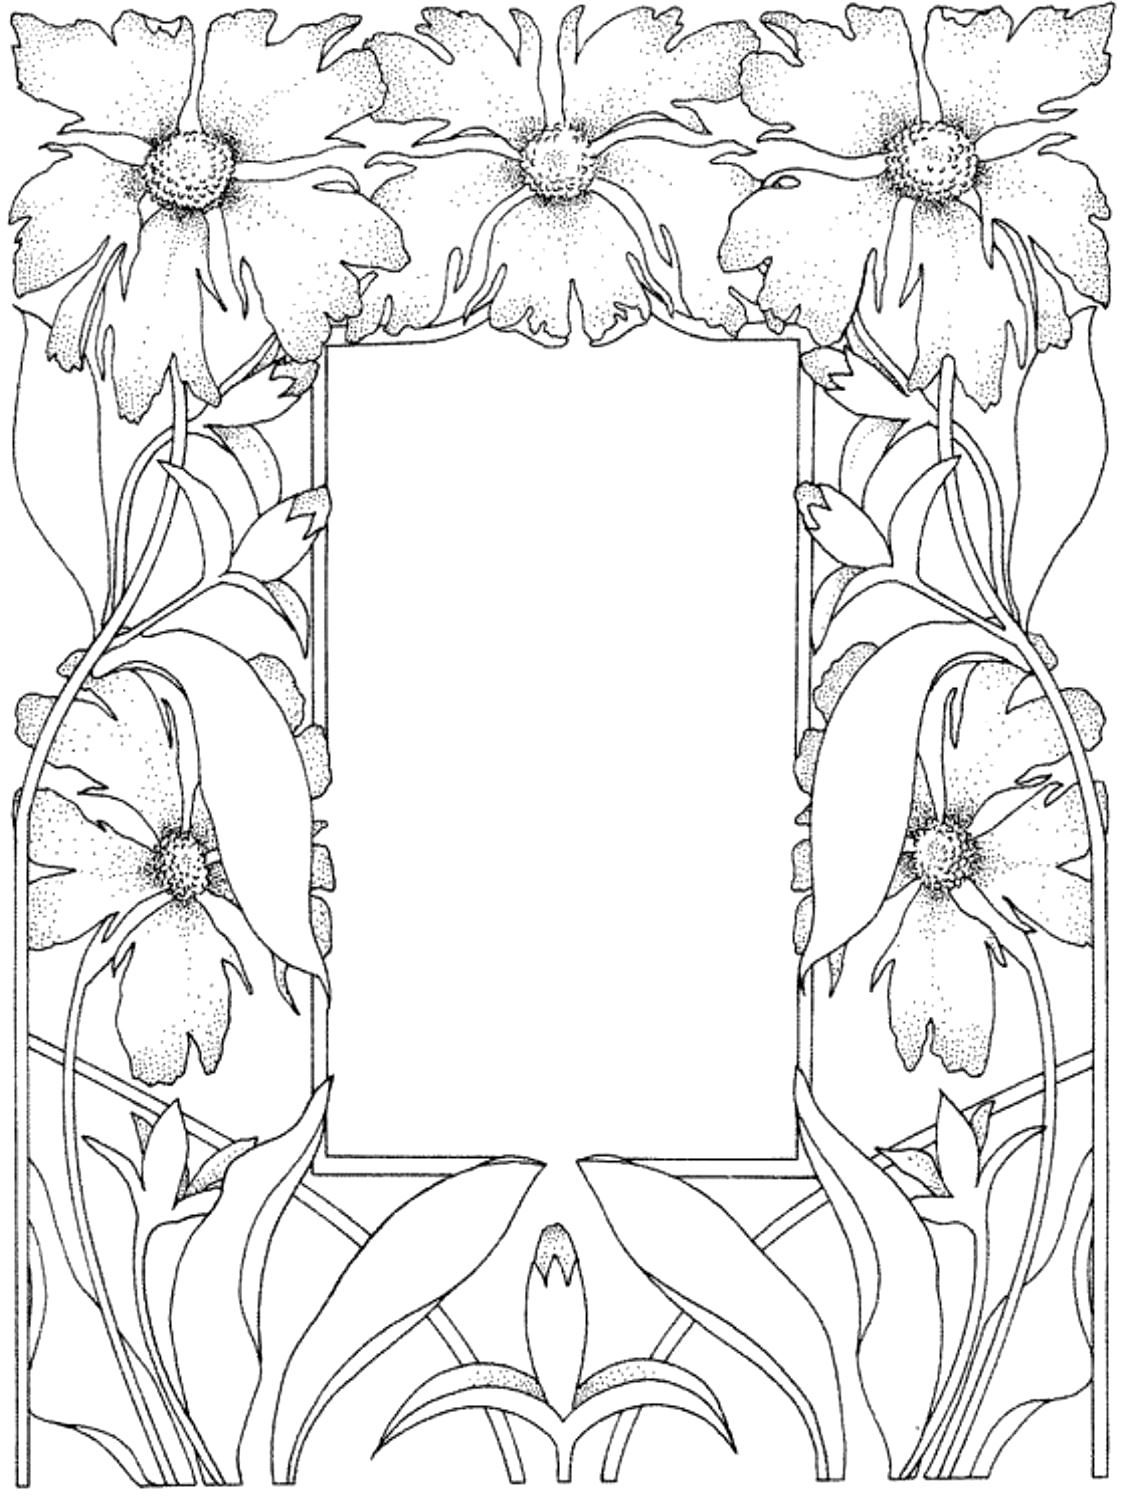 1125x1500 Free Coloring Page Coloring Adult Flowered Framework Flowered